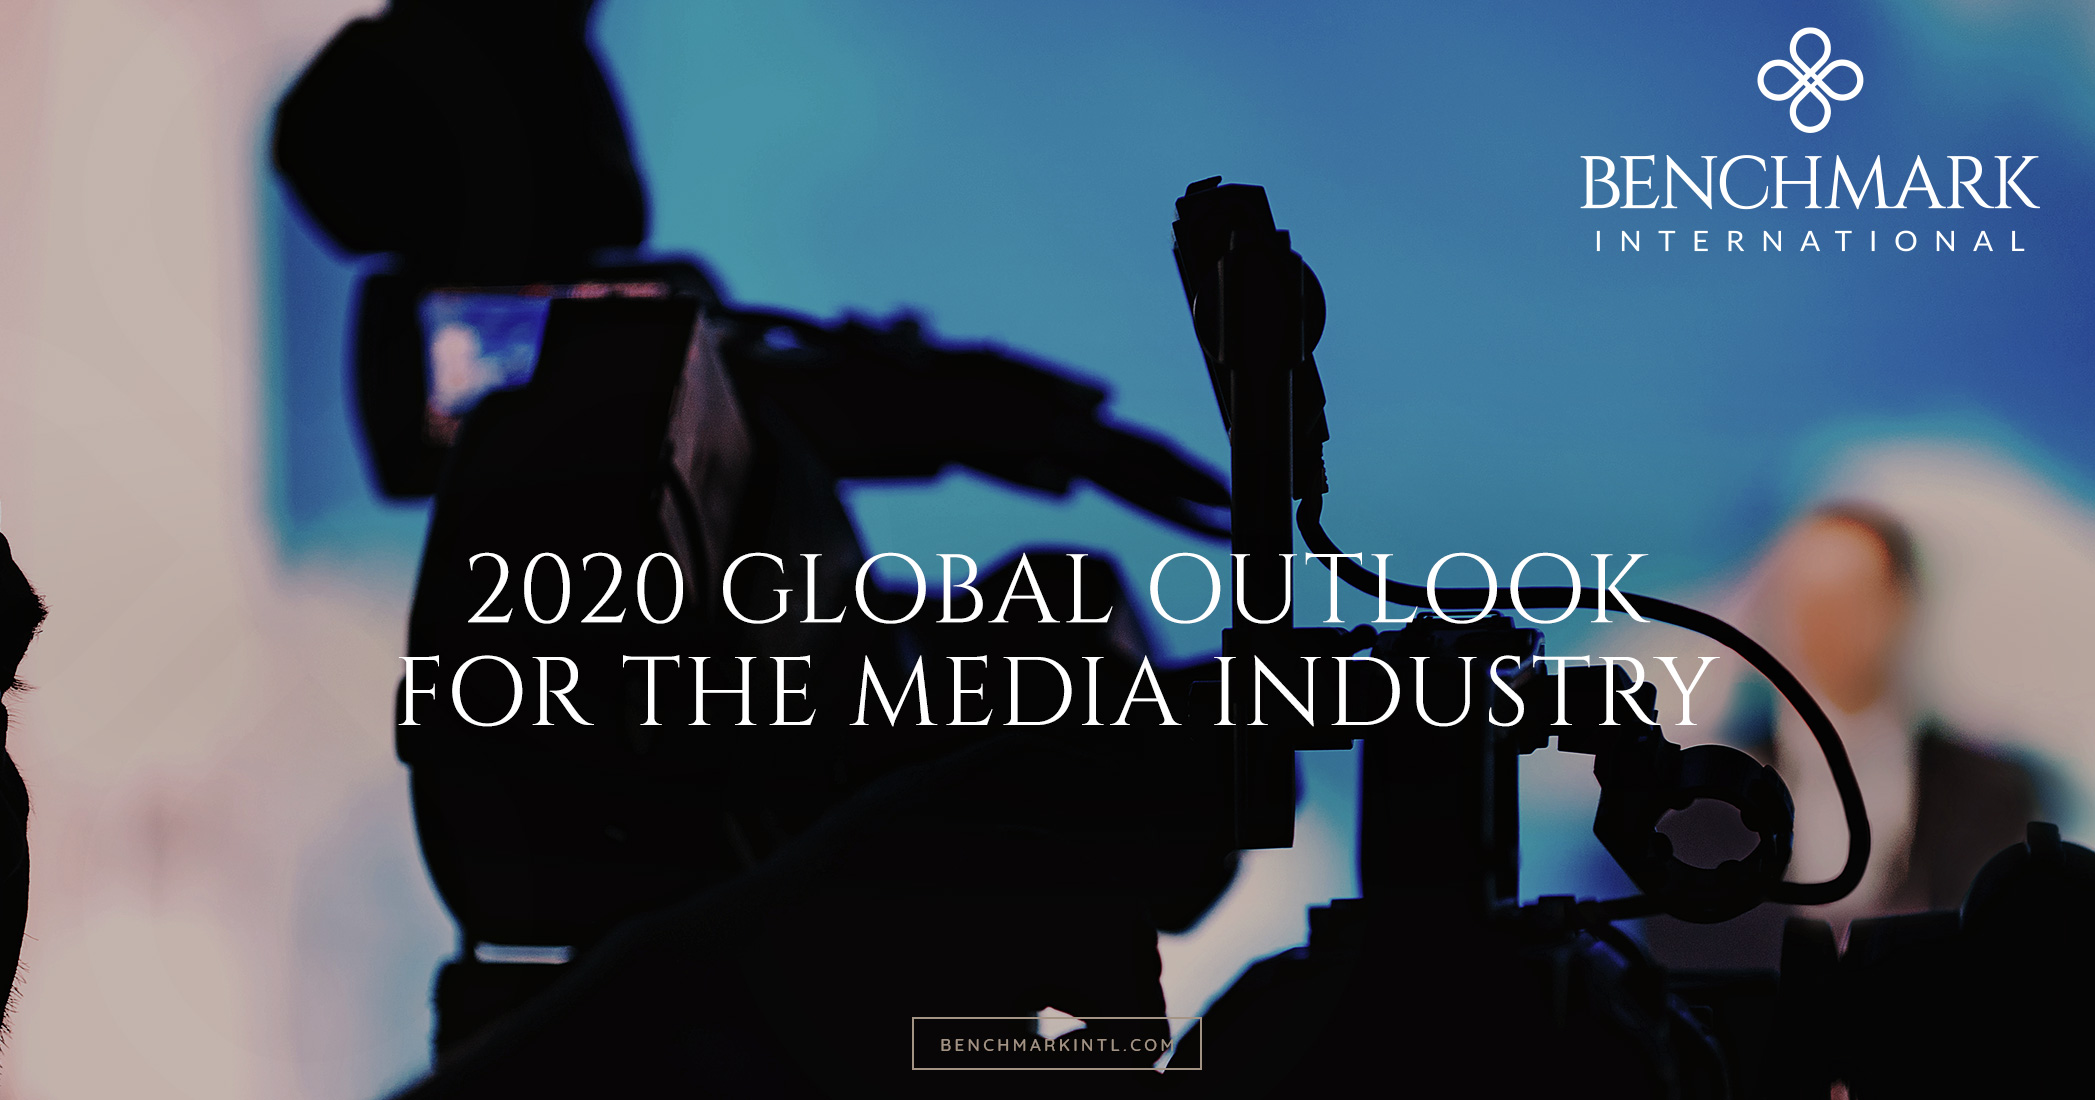 2020 Global Outlook For The Media Industry